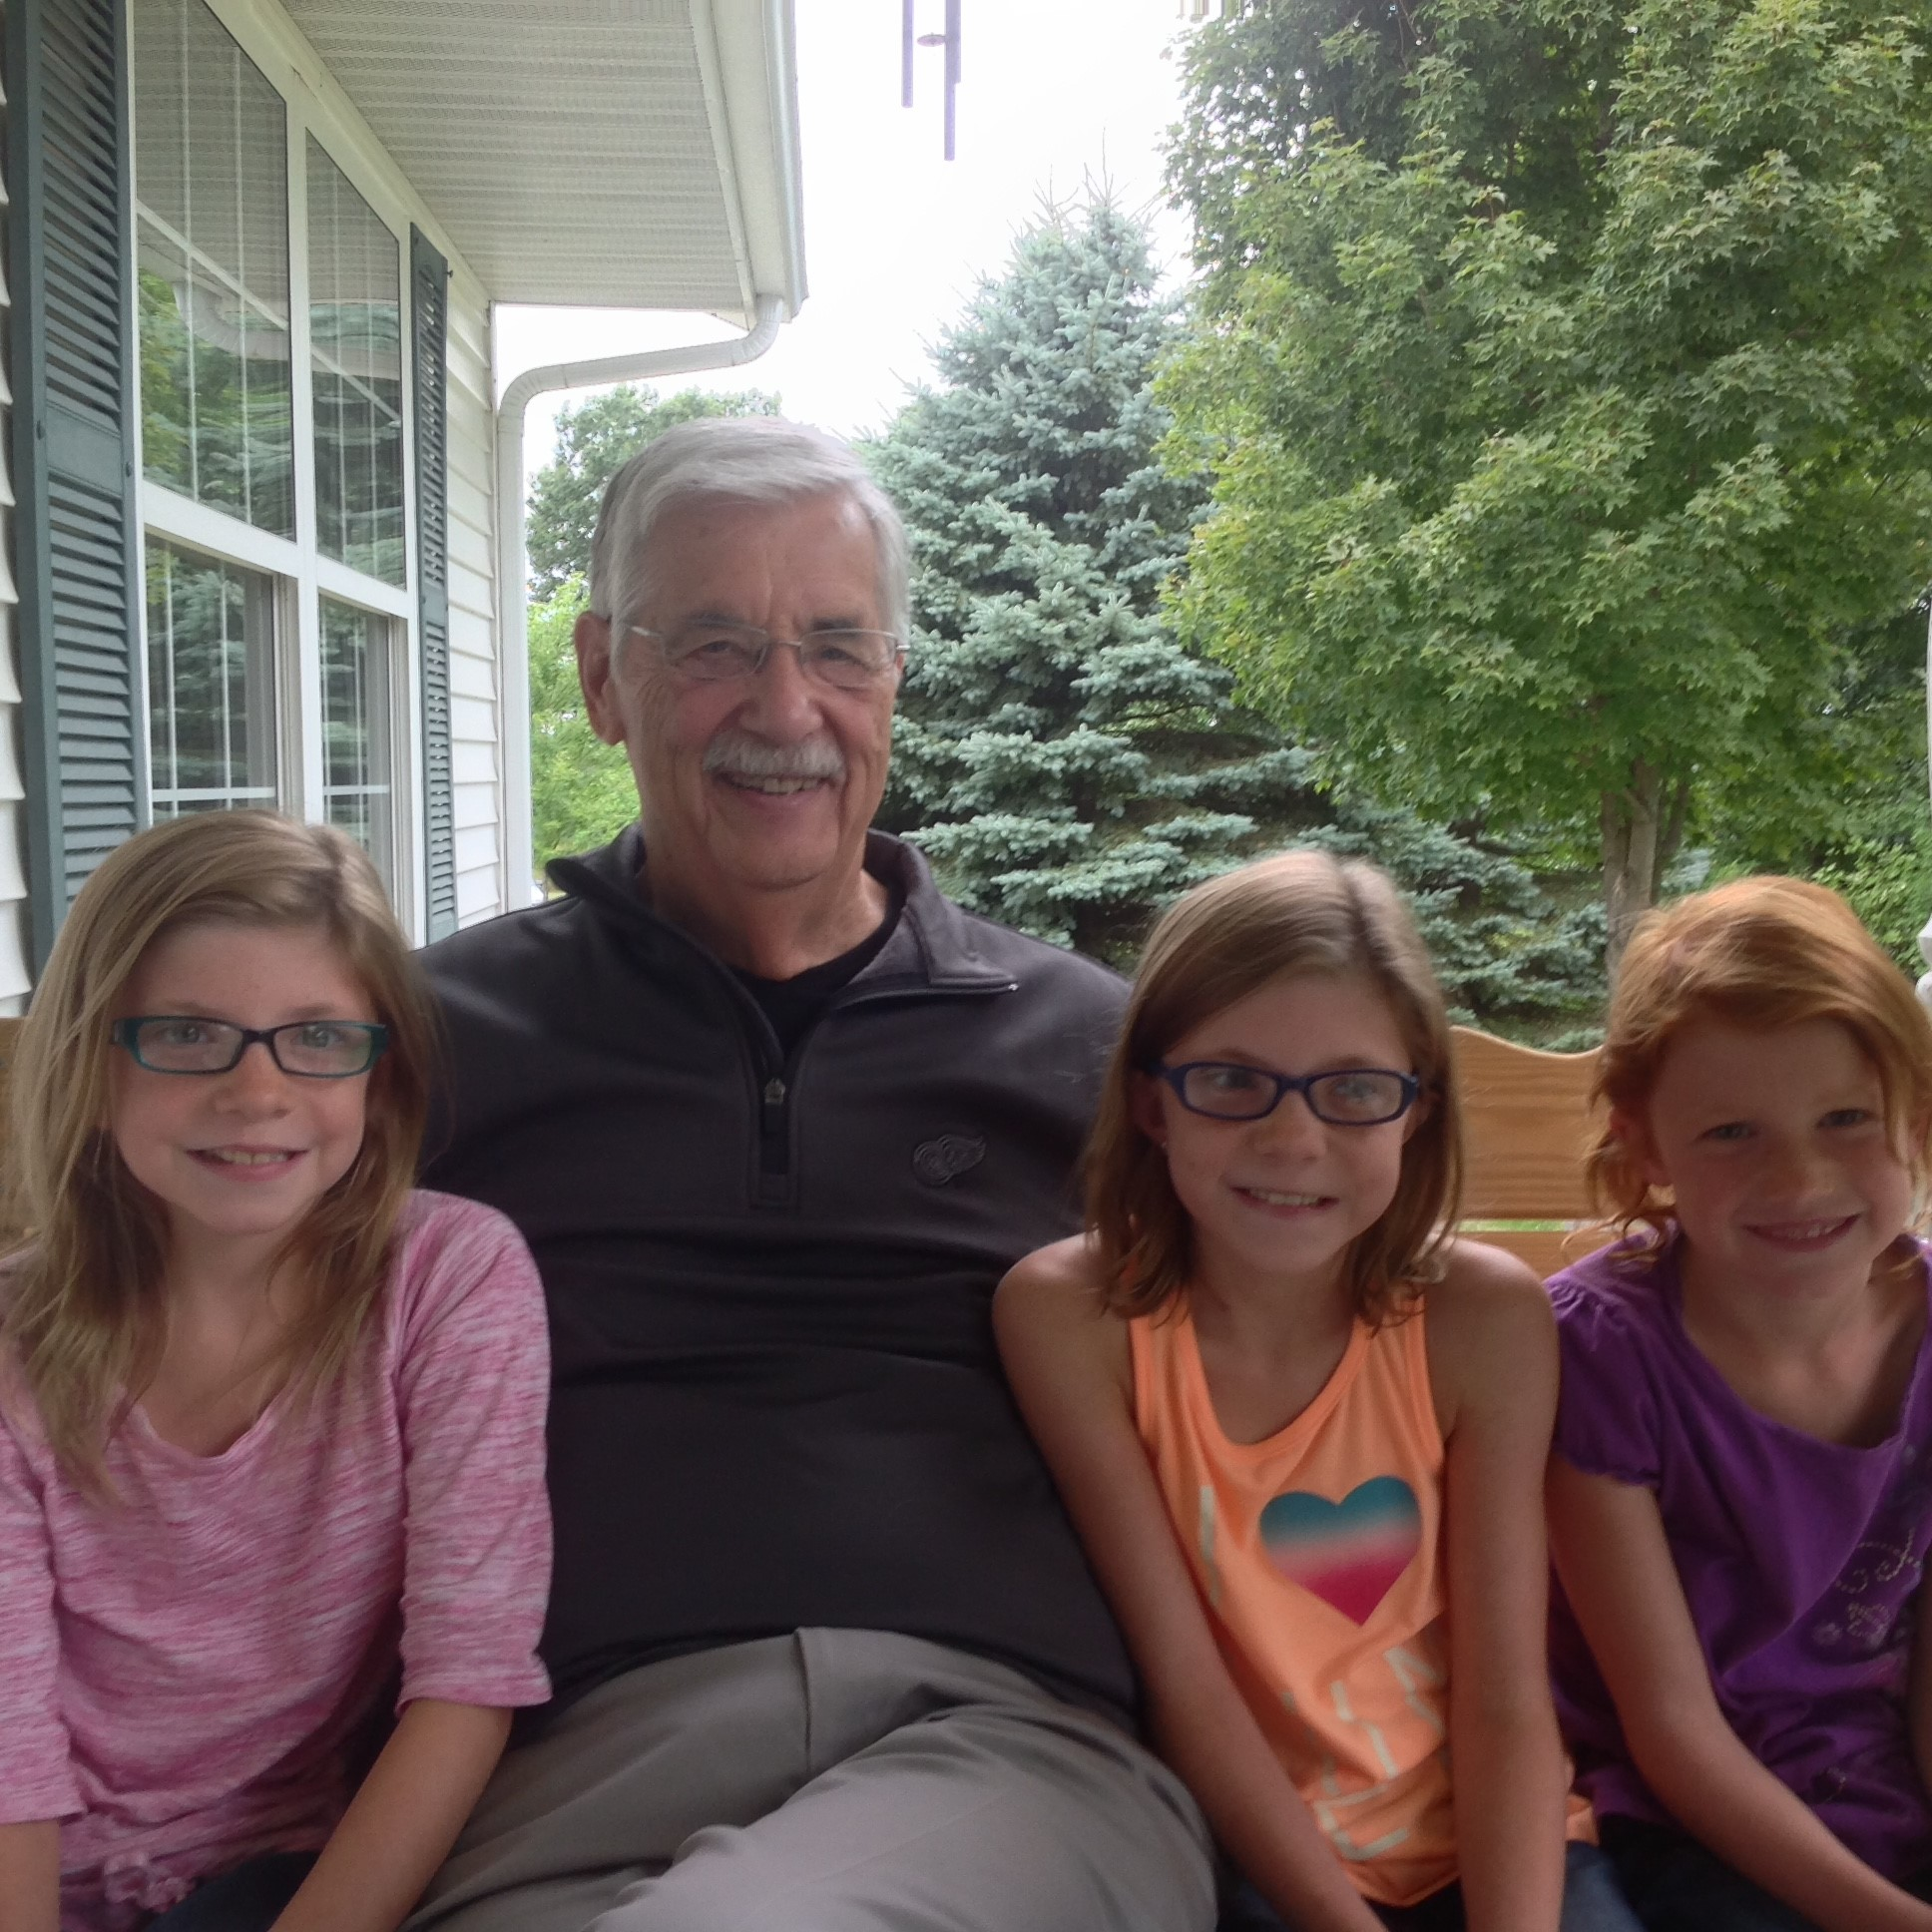 Bill Crooks, 83, with his three grandchildren.